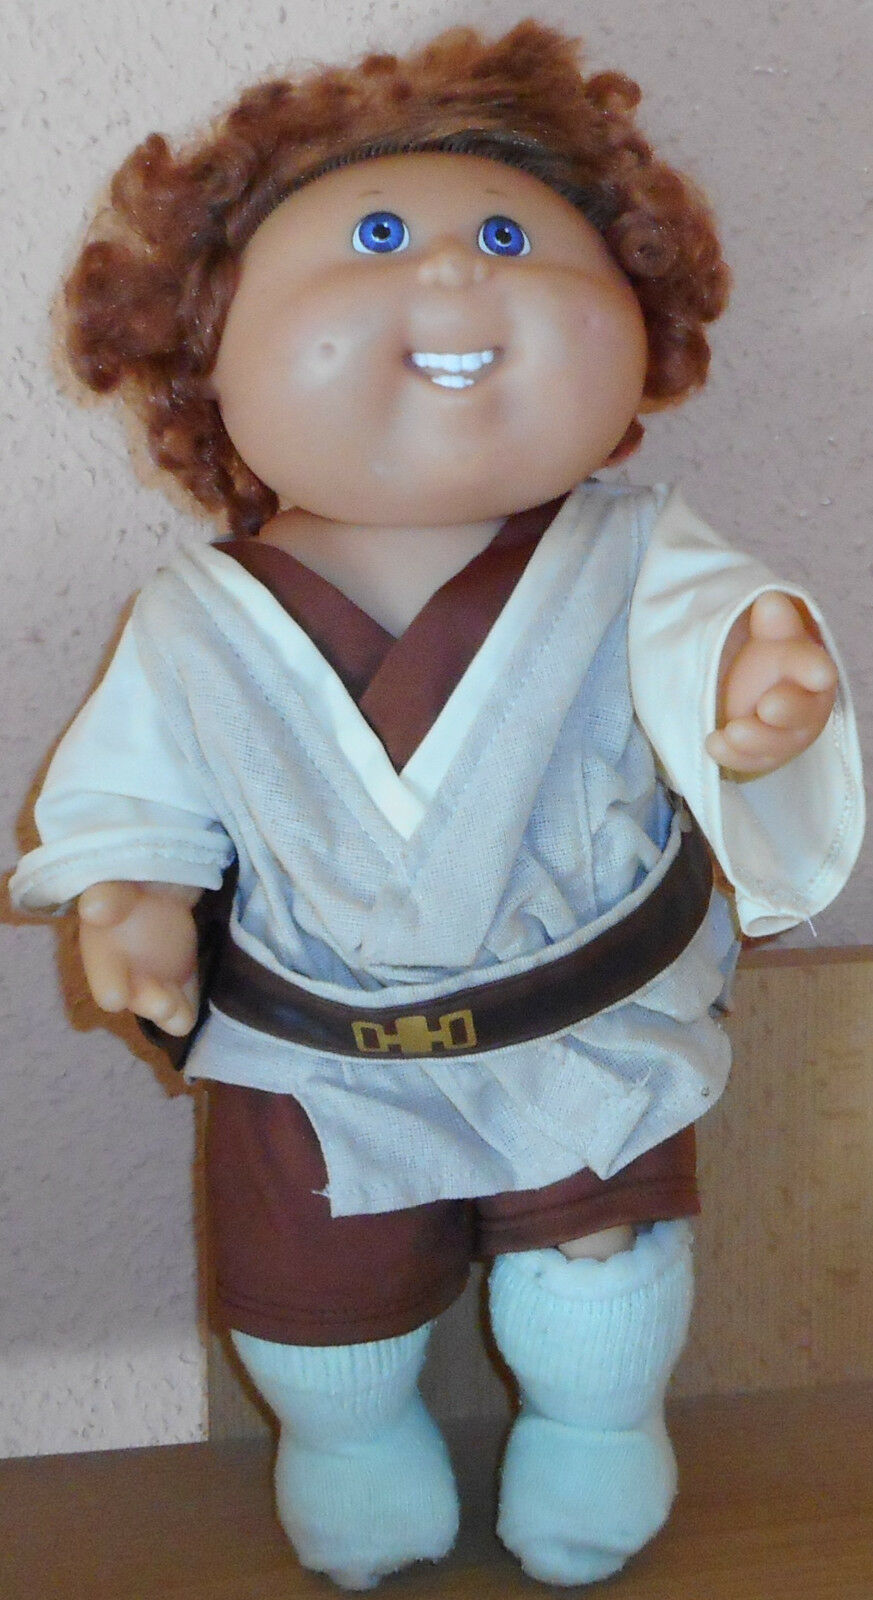 Cabbage Patch Kids Puppe in Star Wars Kleidung   Kohlkopfpuppe